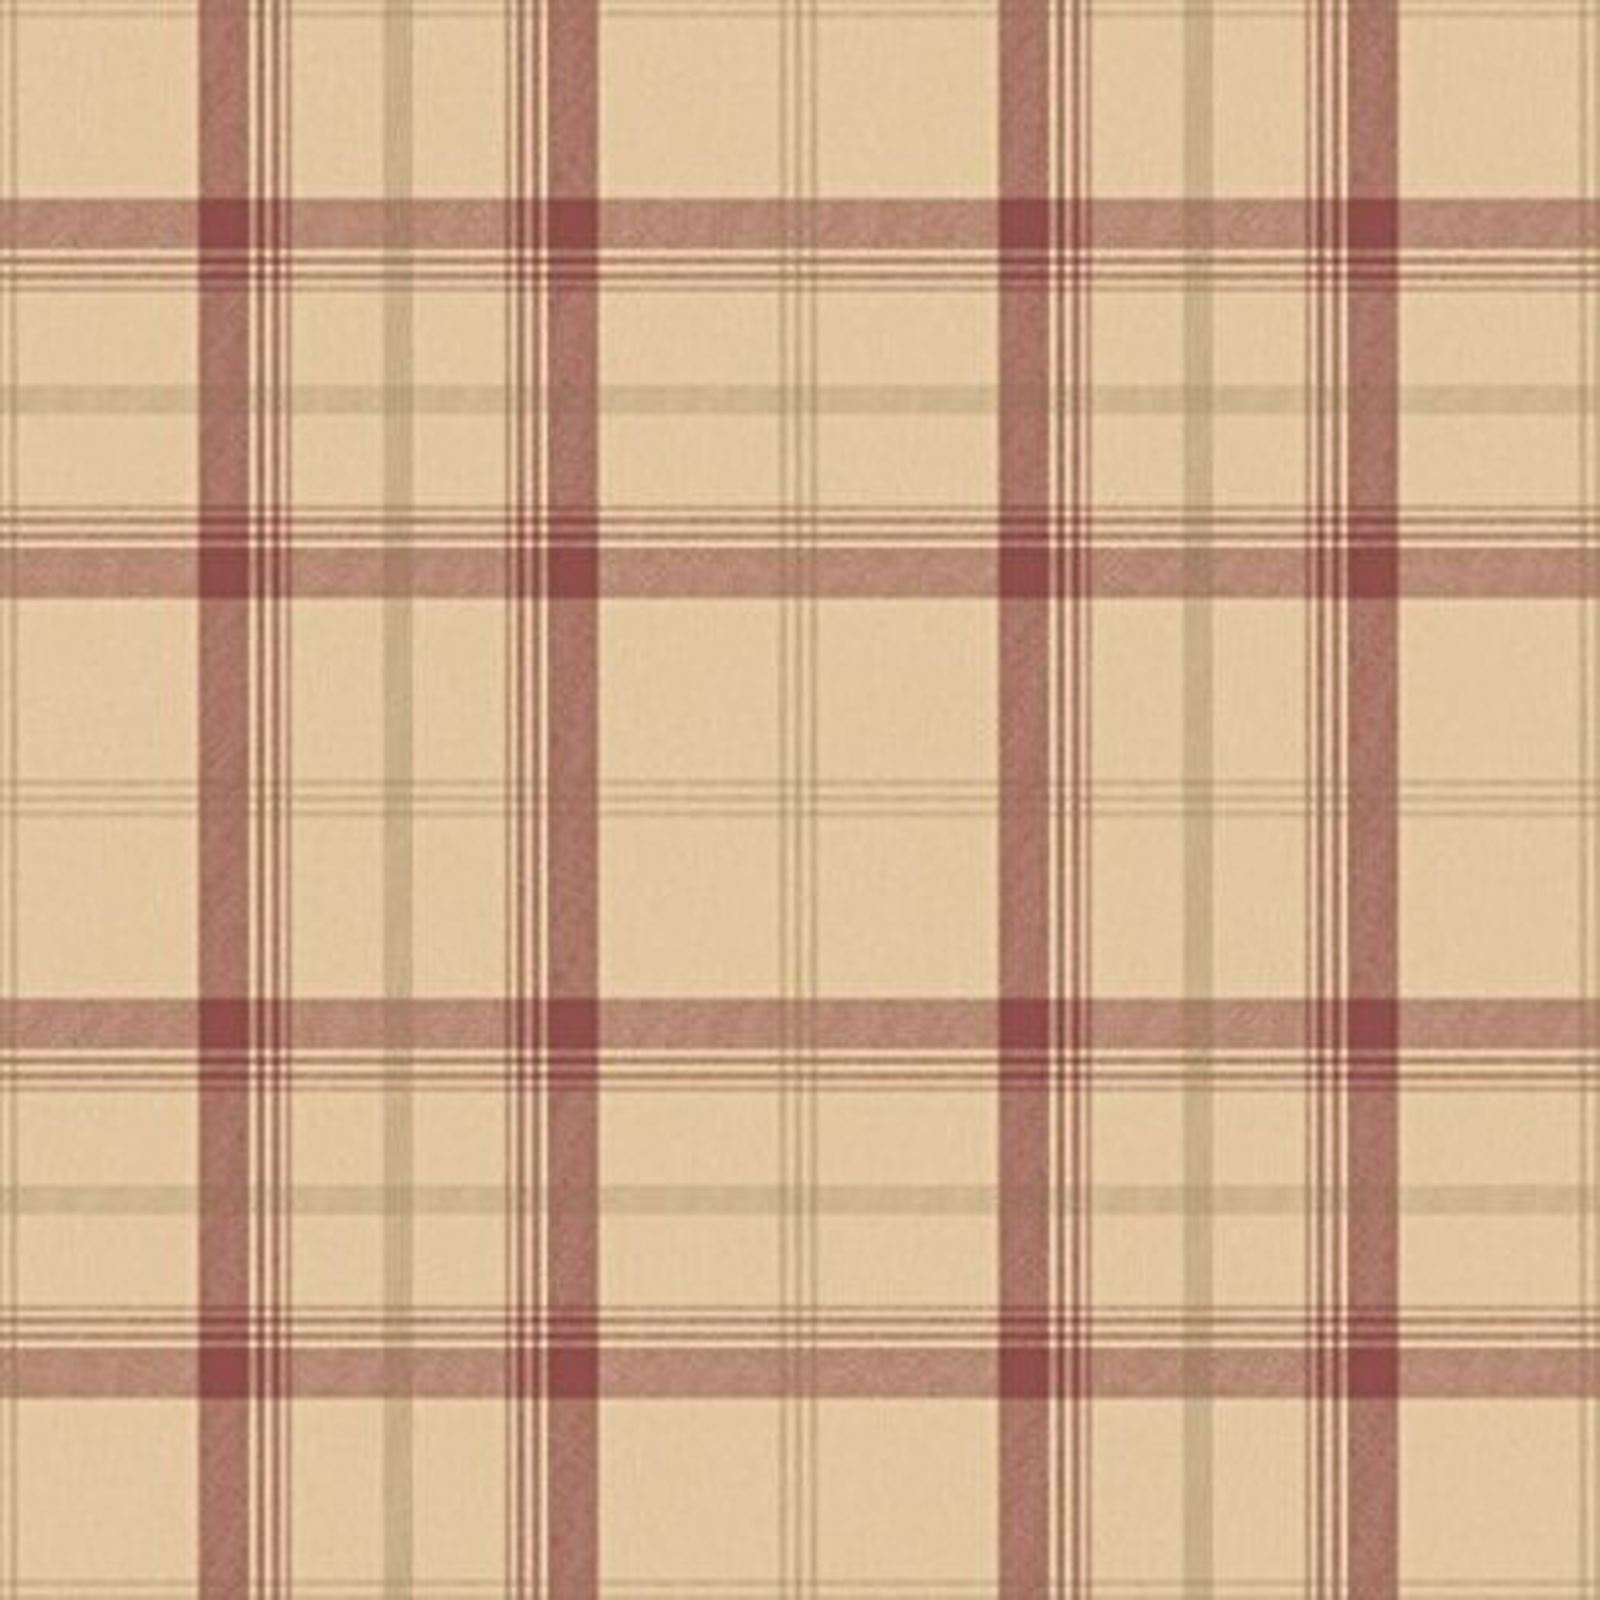 tartan wallpaper plaid checked designs red gold. Black Bedroom Furniture Sets. Home Design Ideas